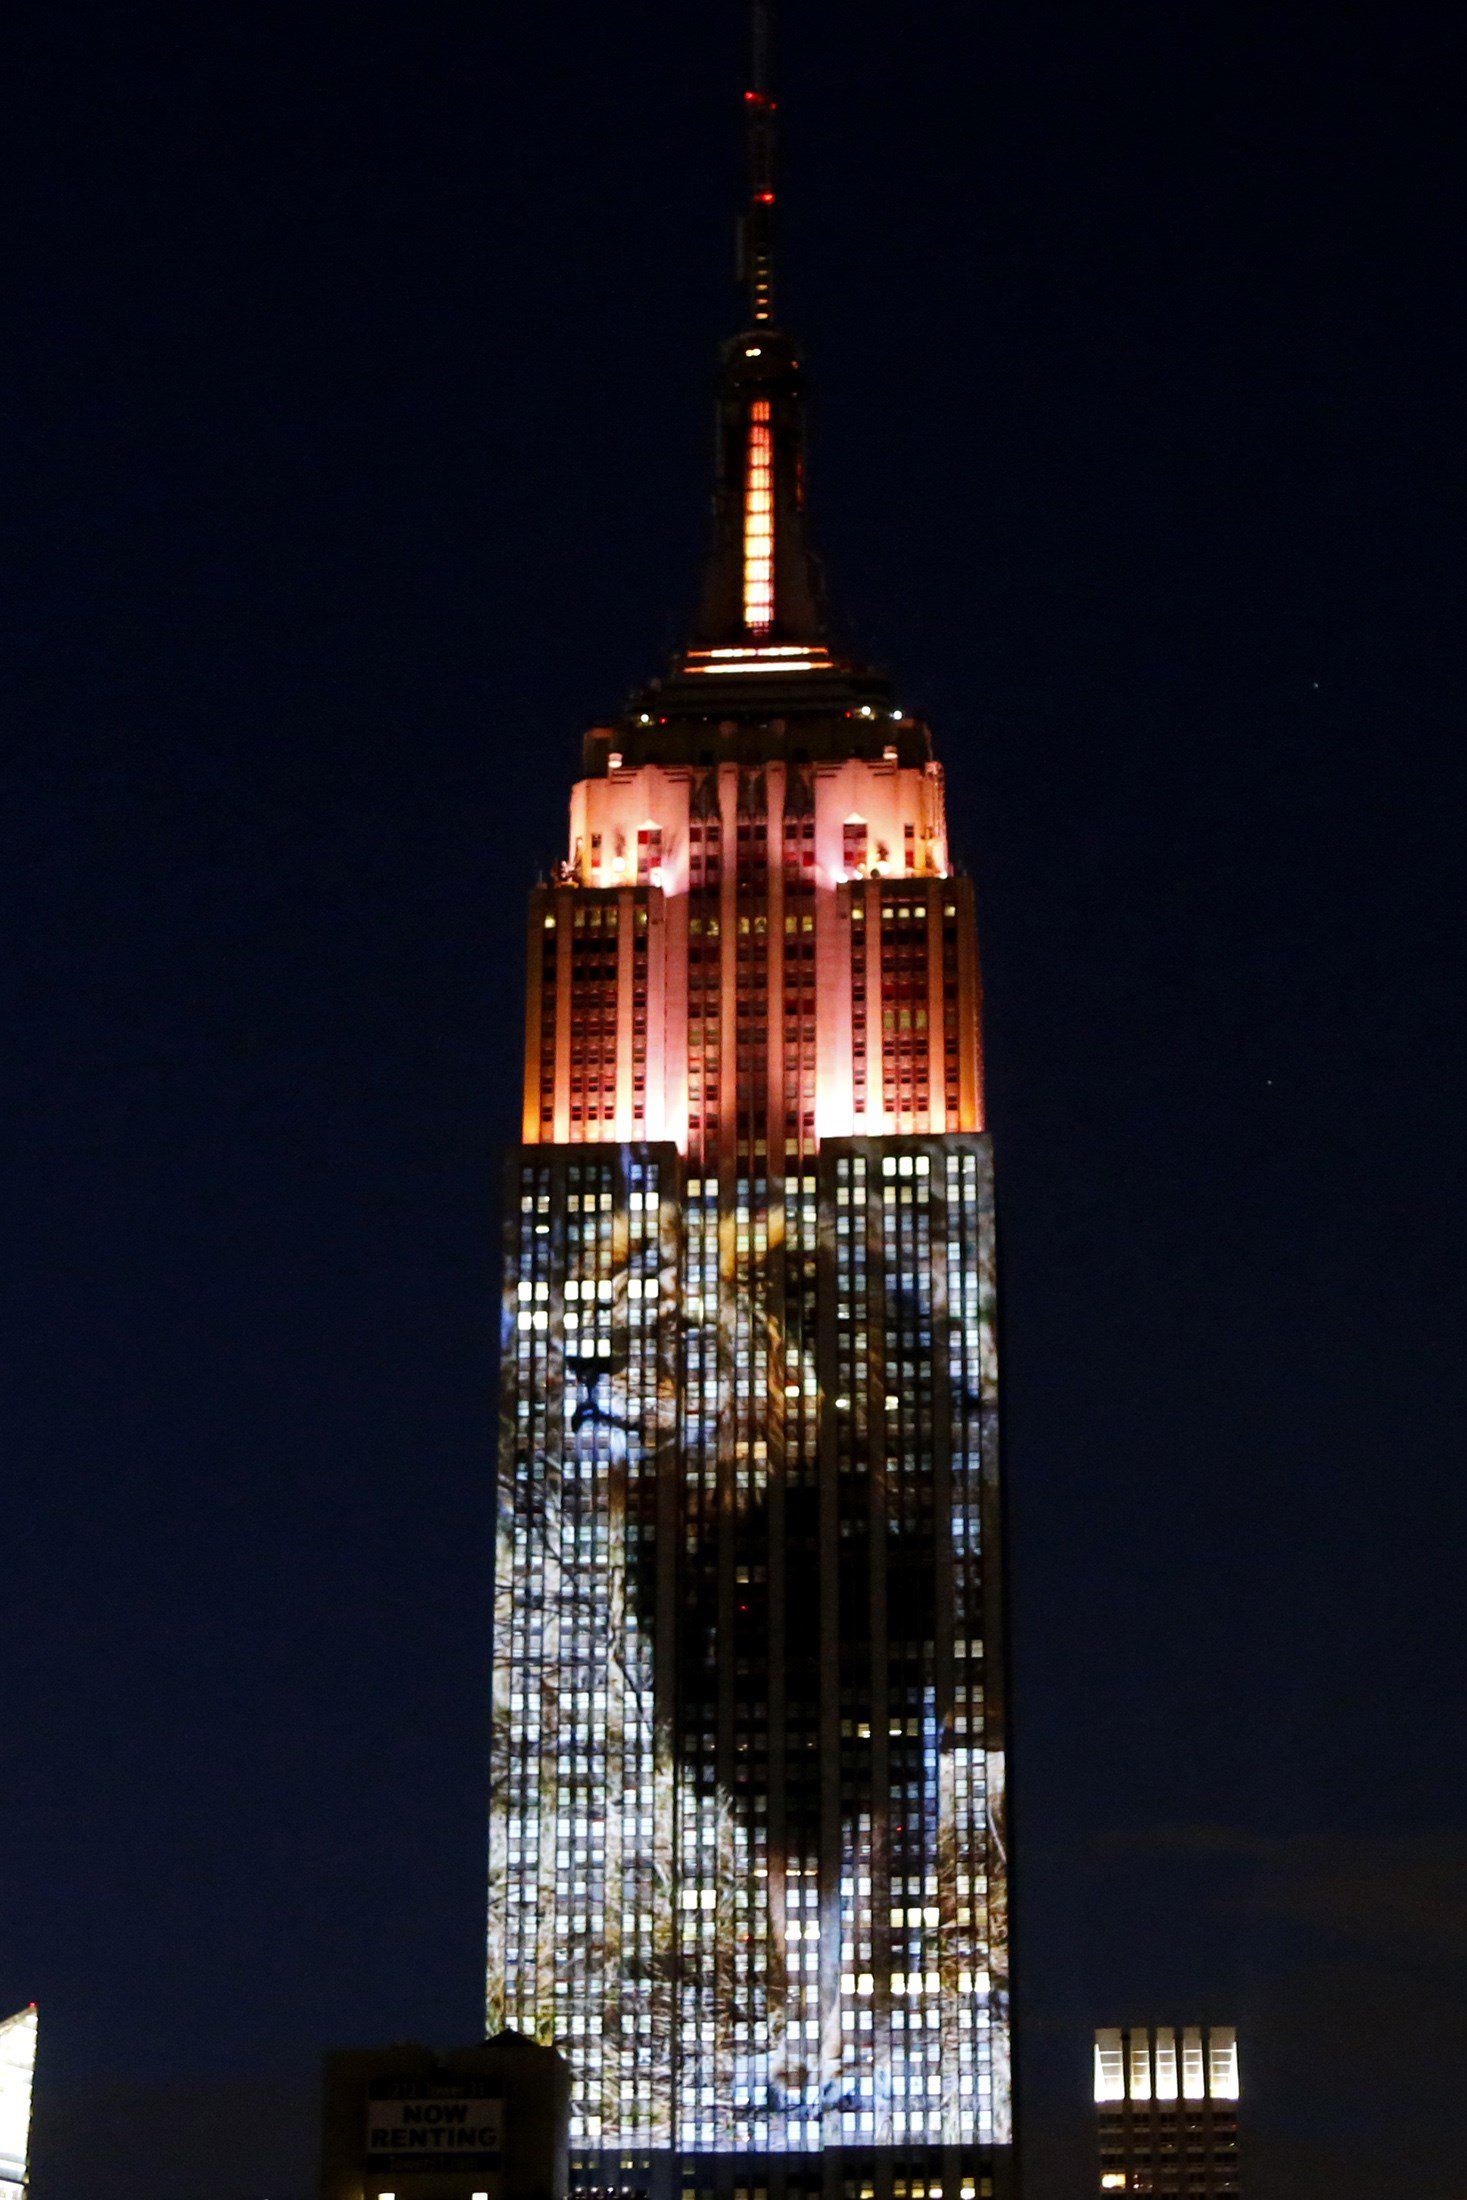 Cecil the lion from Zimbabwe is seen on the Empire State Building, in the 'Projecting Change on the Empire State Building' project, made by the Oscar winning director and founder of the Oceanic Preservation Society Louis Psihoyos and producer Fisher Stevens, in New York City on Aug. 1, 2015.